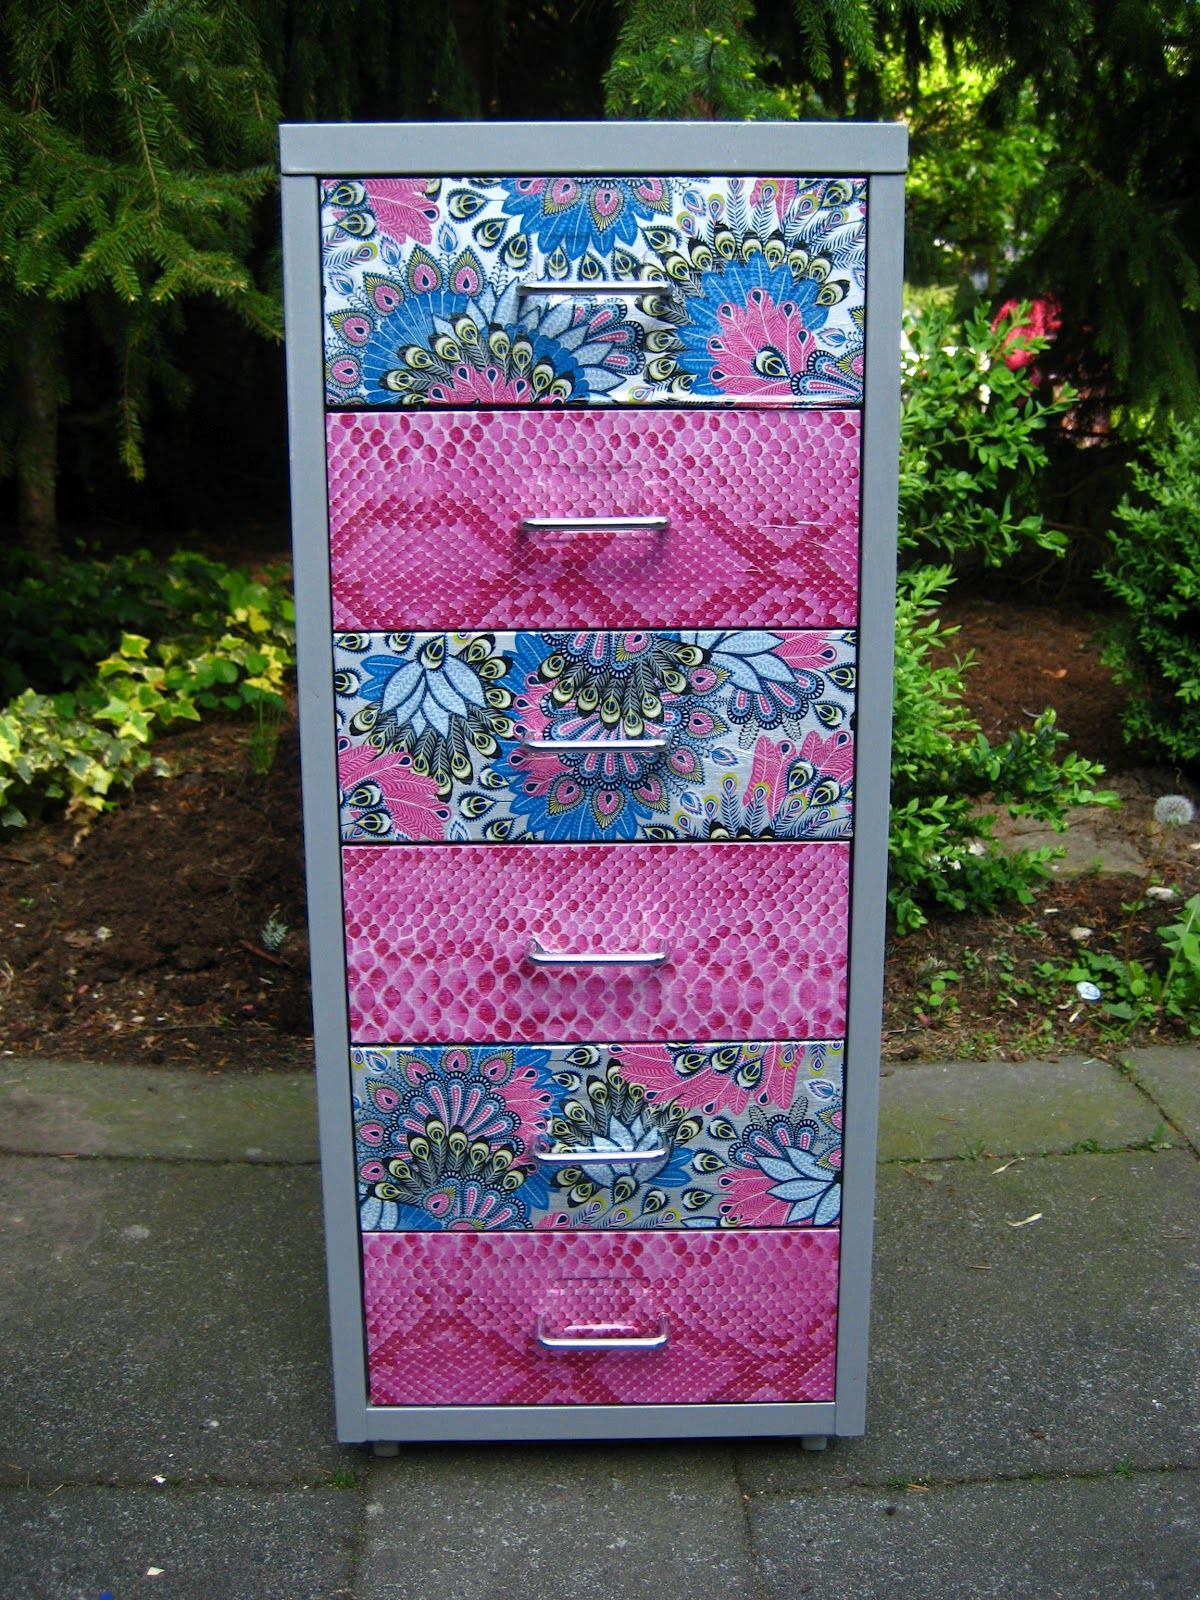 Köln Second Hand Möbel Filing Cabinet Decorating Diy Using Decopatch Paper And